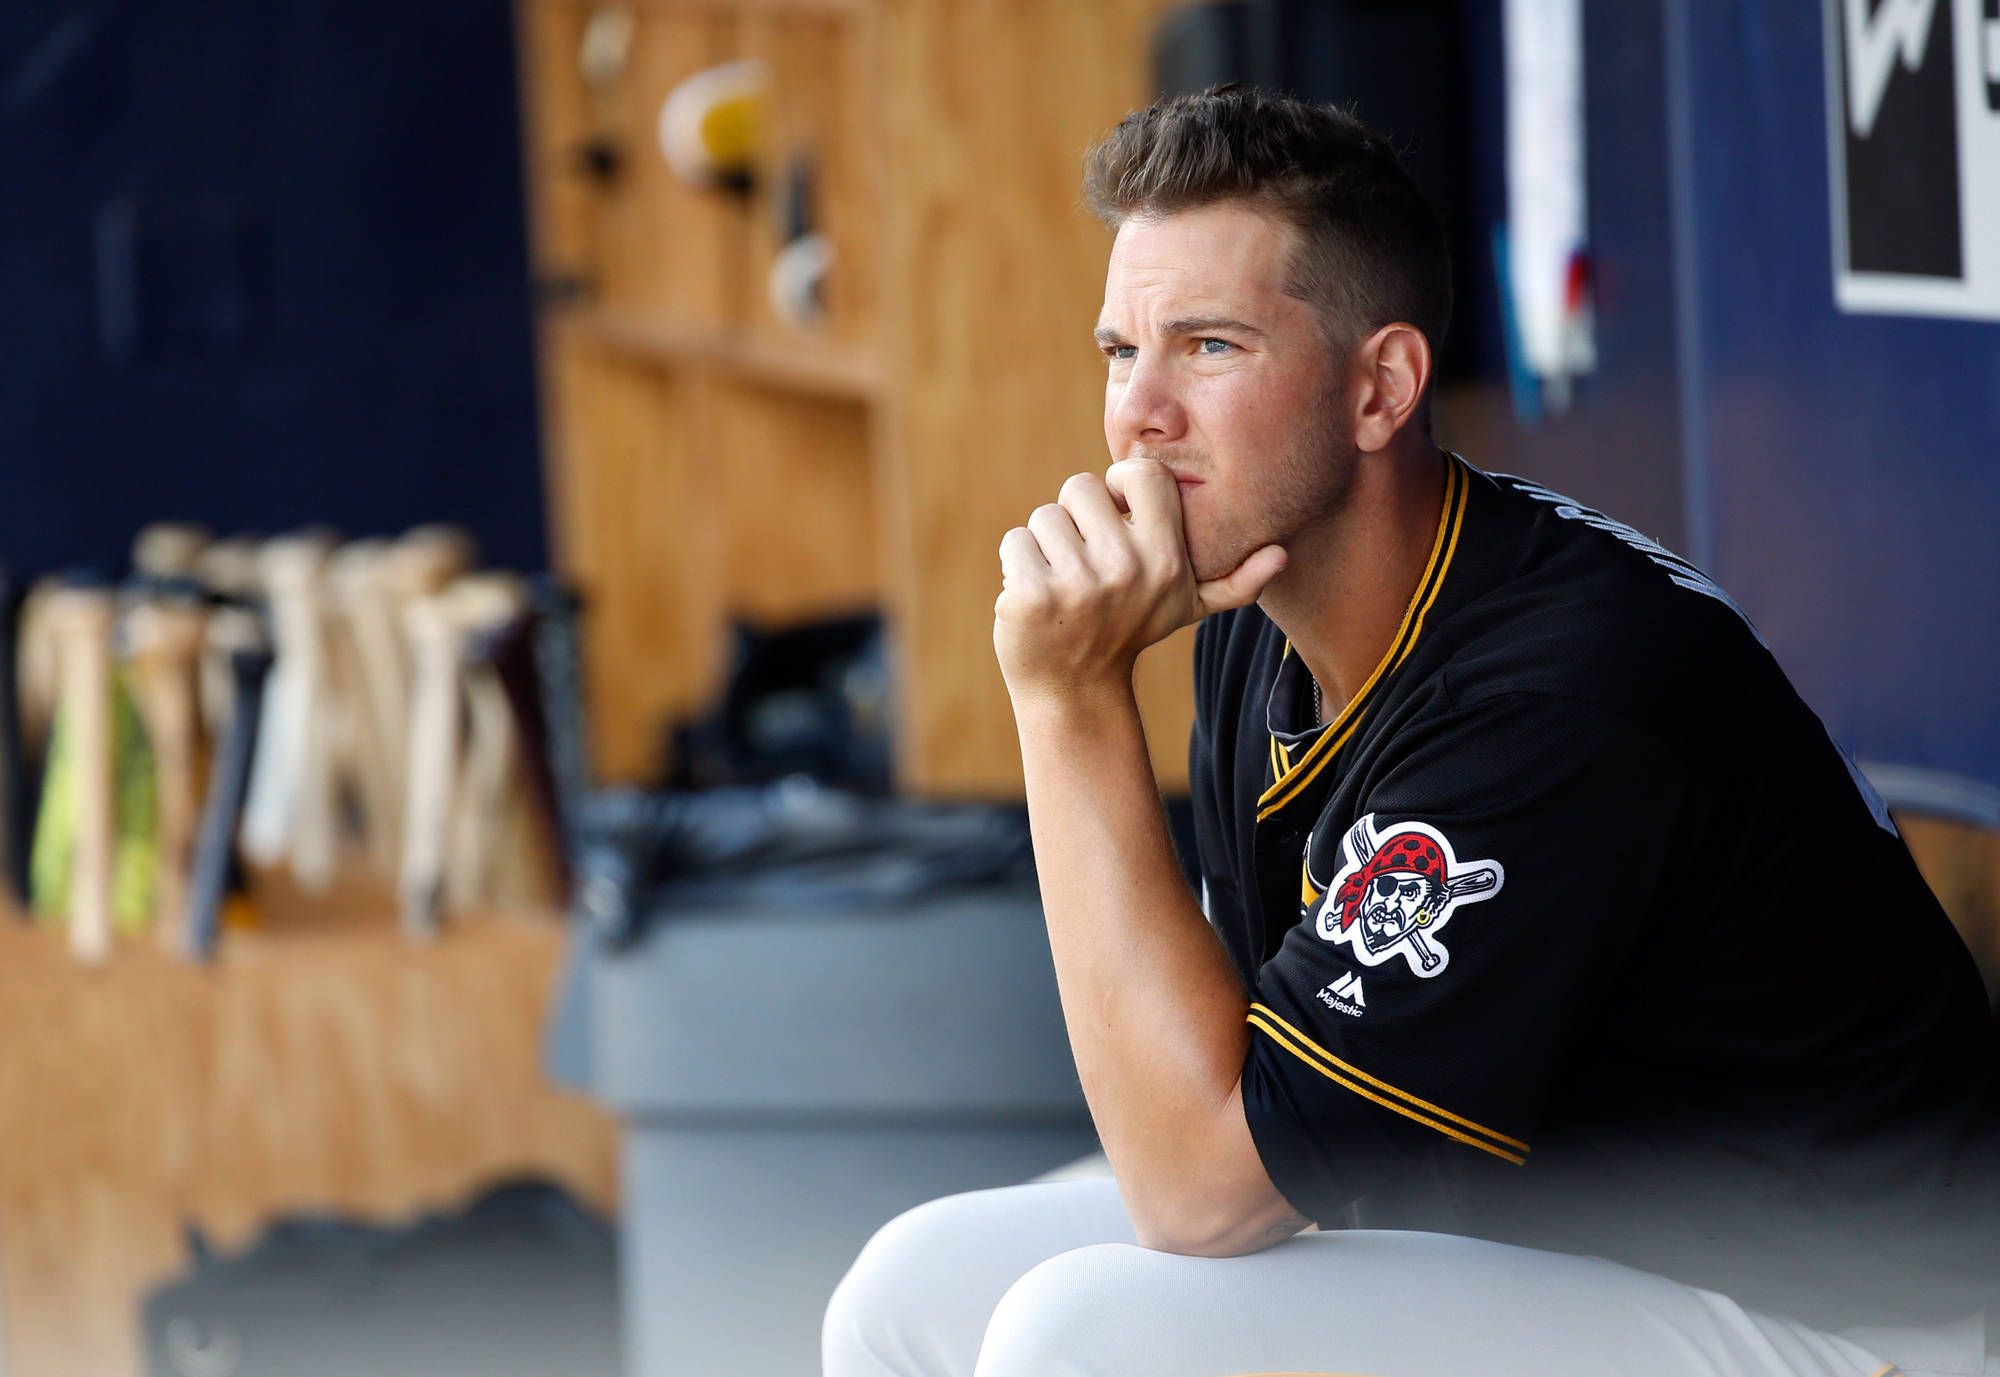 Five reasons that the Pirates missed the playoffs in 2016